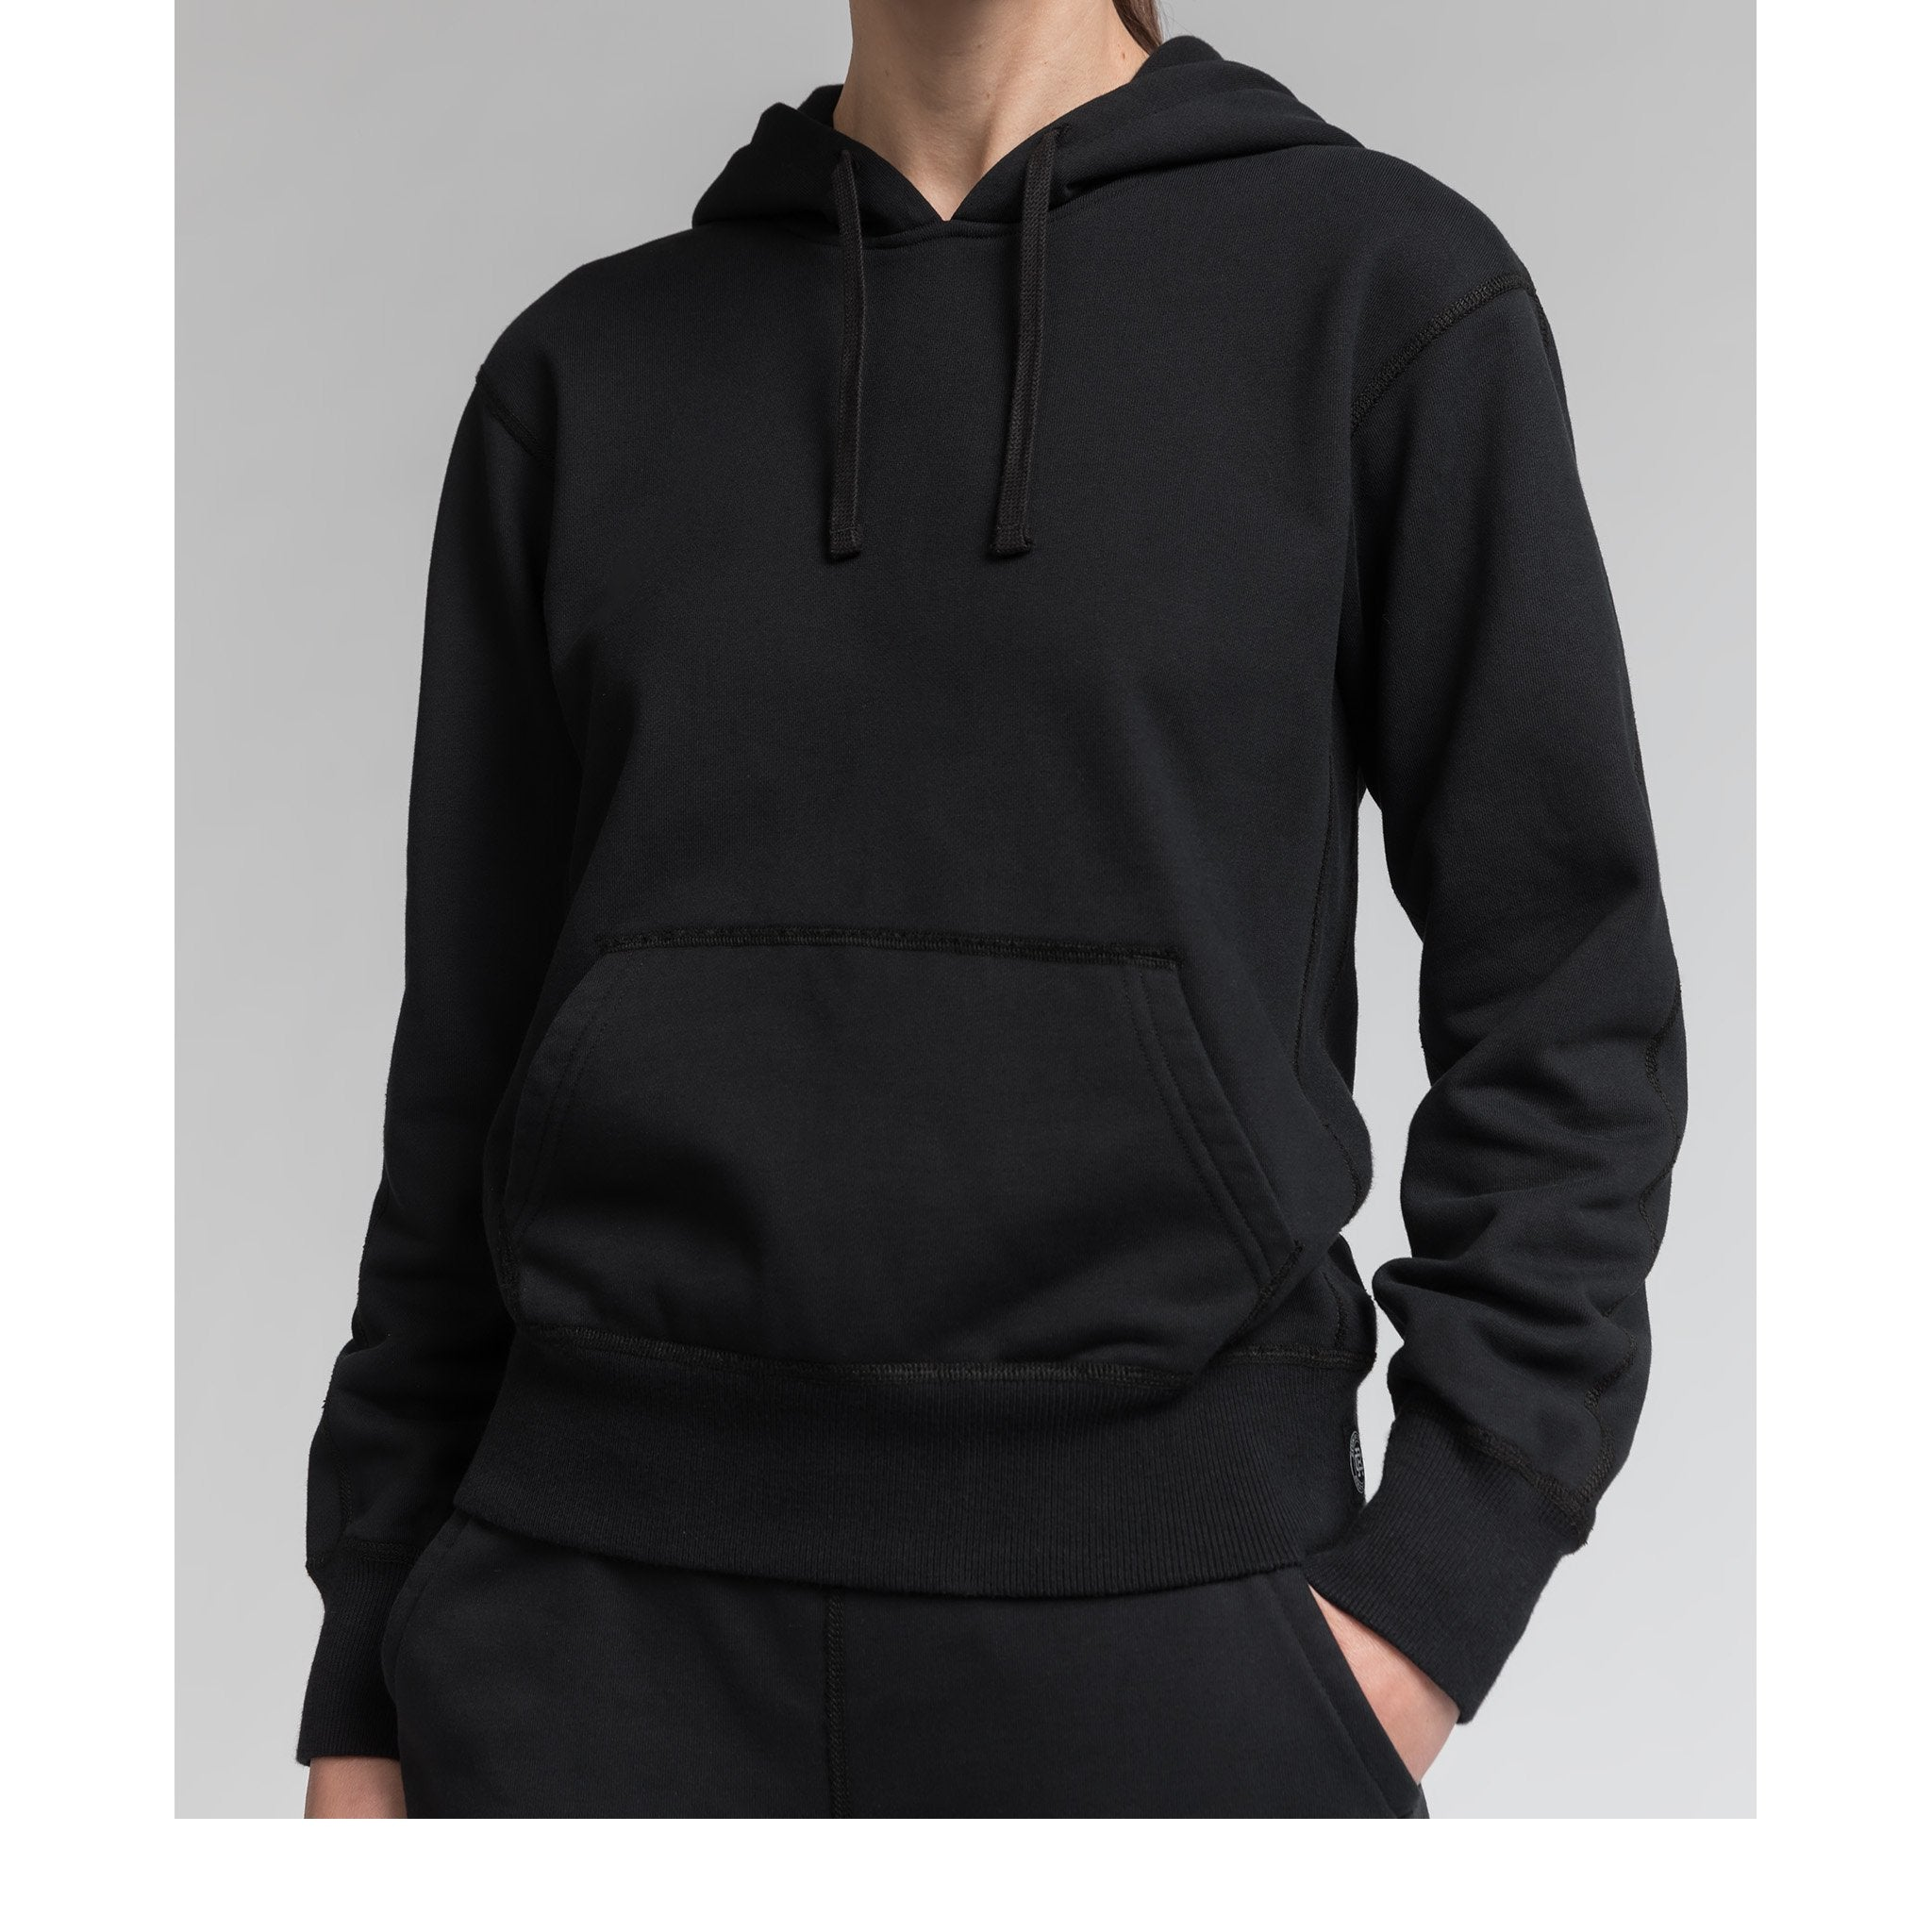 REIGNING CHAMP W'S HOODIES BLACK XS RELAXED HOODIE